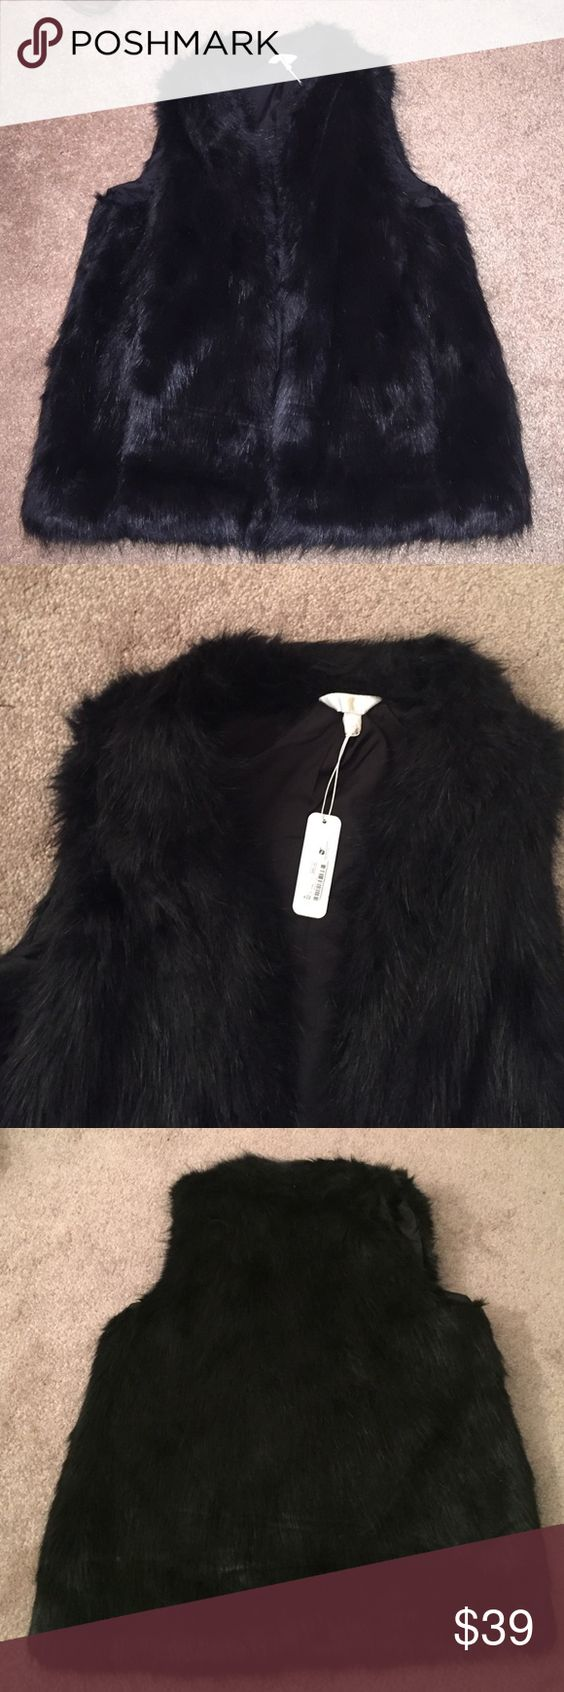 NWT BLACK FUR VEST so chic and affordable. Similar ones sell for hundreds of dollars! Faux black fur. Looks elegant with a turtleneck or even layered over a leather jacket! Acrylic/polyester/modacrylic. Never worn and new with tags. Charming Charlie Jackets & Coats Vests